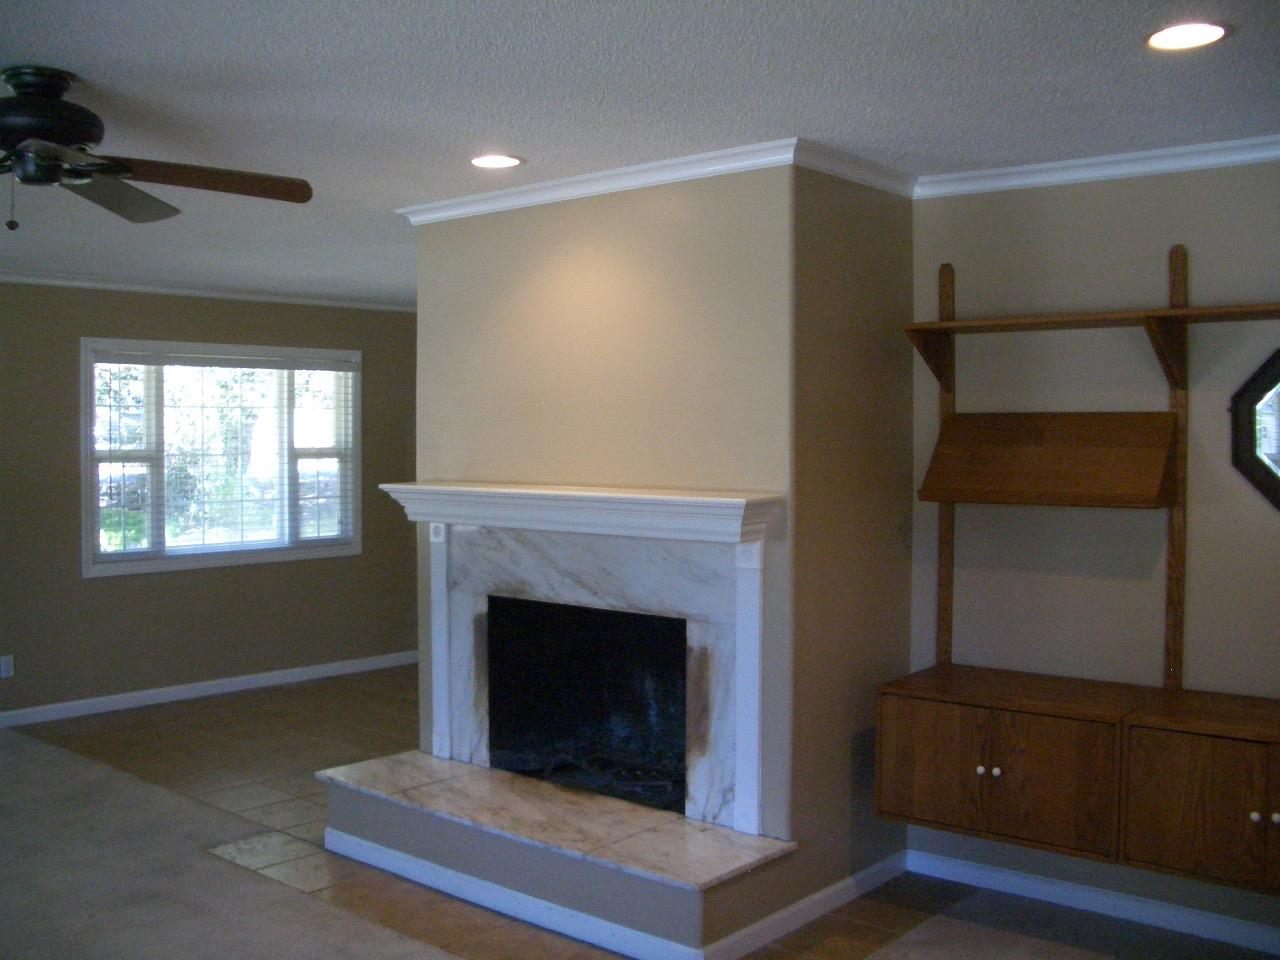 Additional photo for property listing at 10148 Blue Larkspur Lane  Monterey, カリフォルニア 93940 アメリカ合衆国